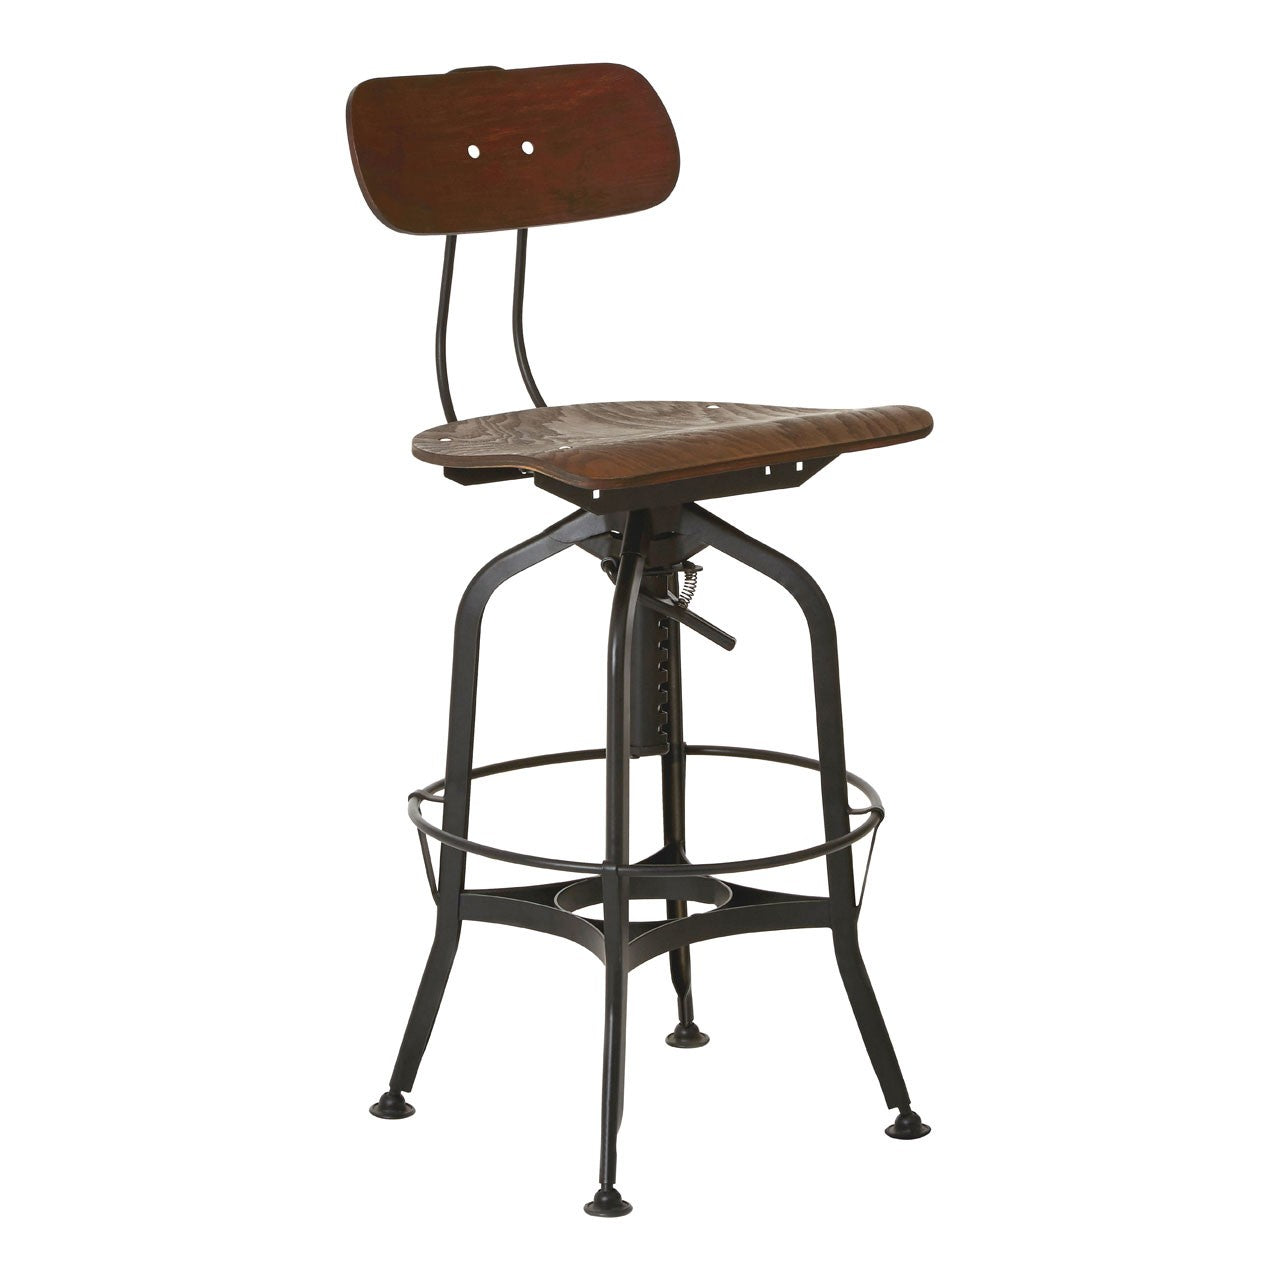 New Foundry Bar Stool (Black Finish)